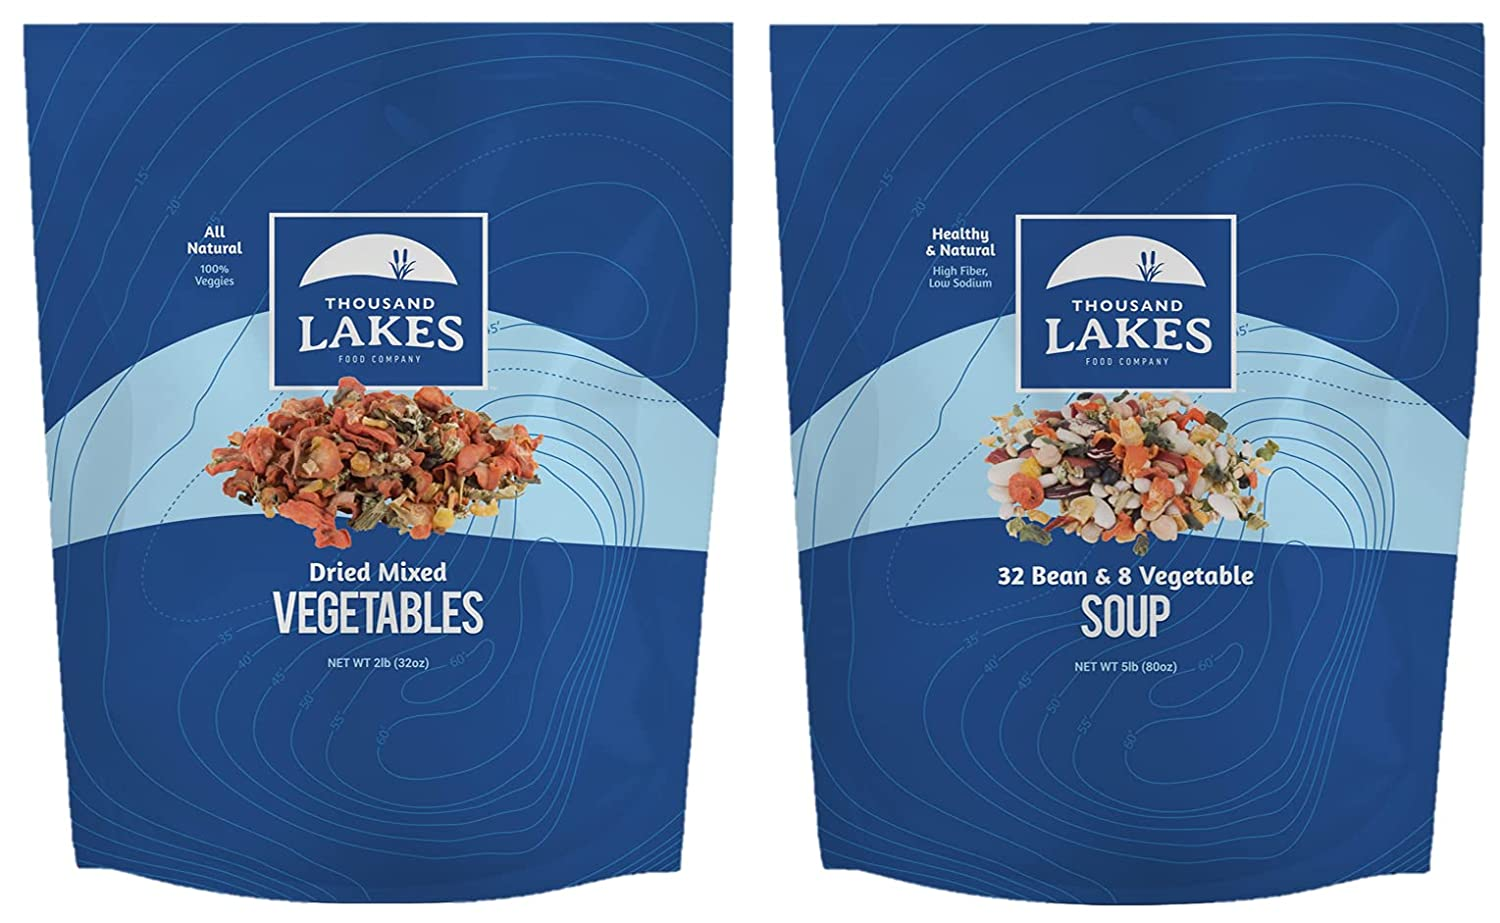 Thousand Lakes Mixed Vegetable Soup Blend and Special price for a limited time 32 Vege Long-awaited Bean 8